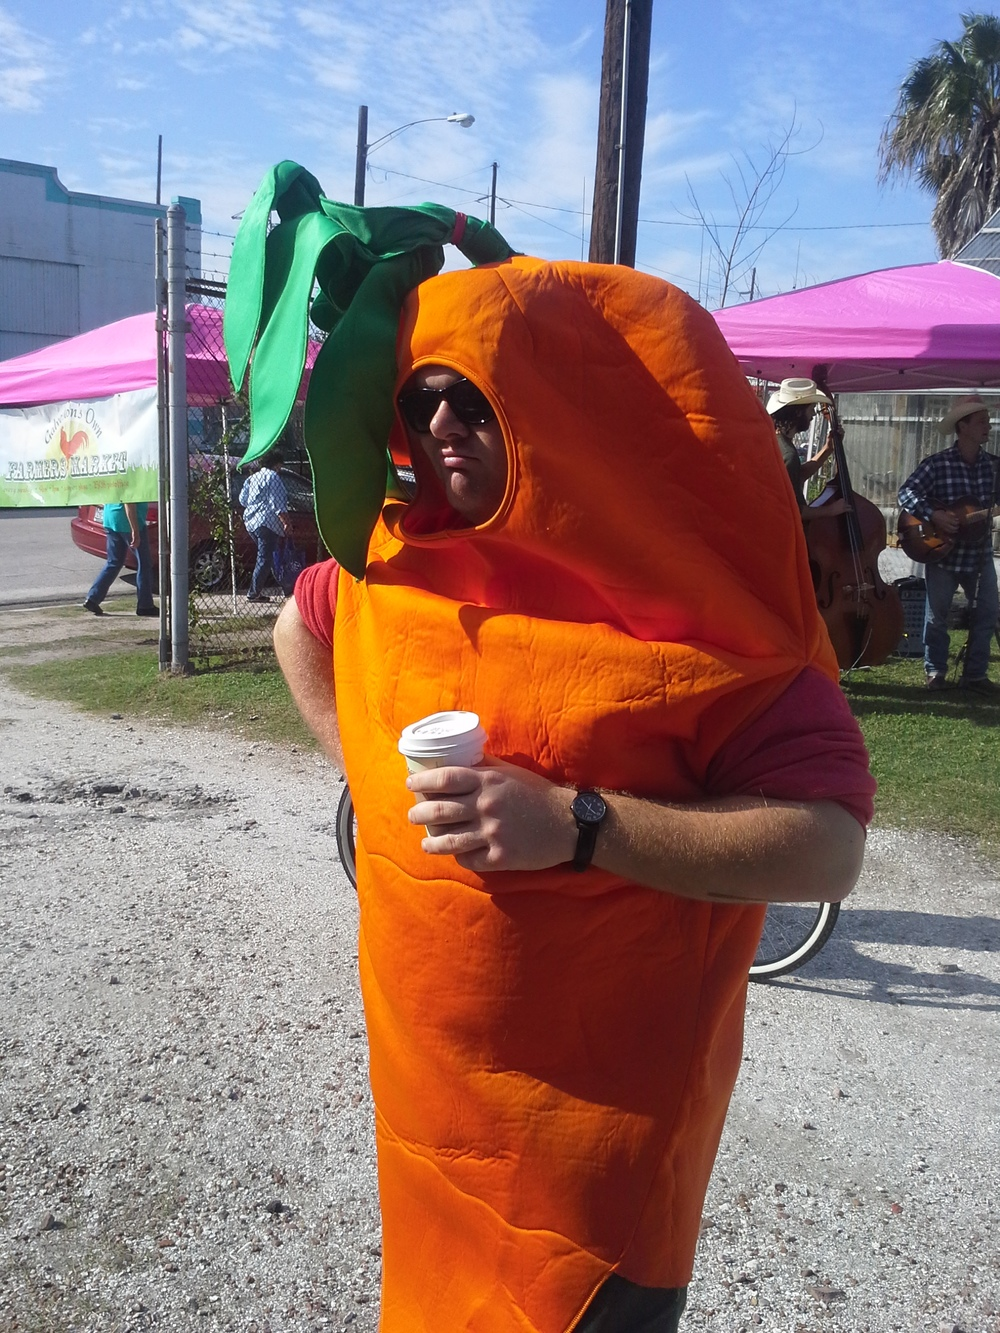 And he does it ' cause he loves salads so much. (Michael, our unofficial mascot for the Galveston's Own Farmer's Market)